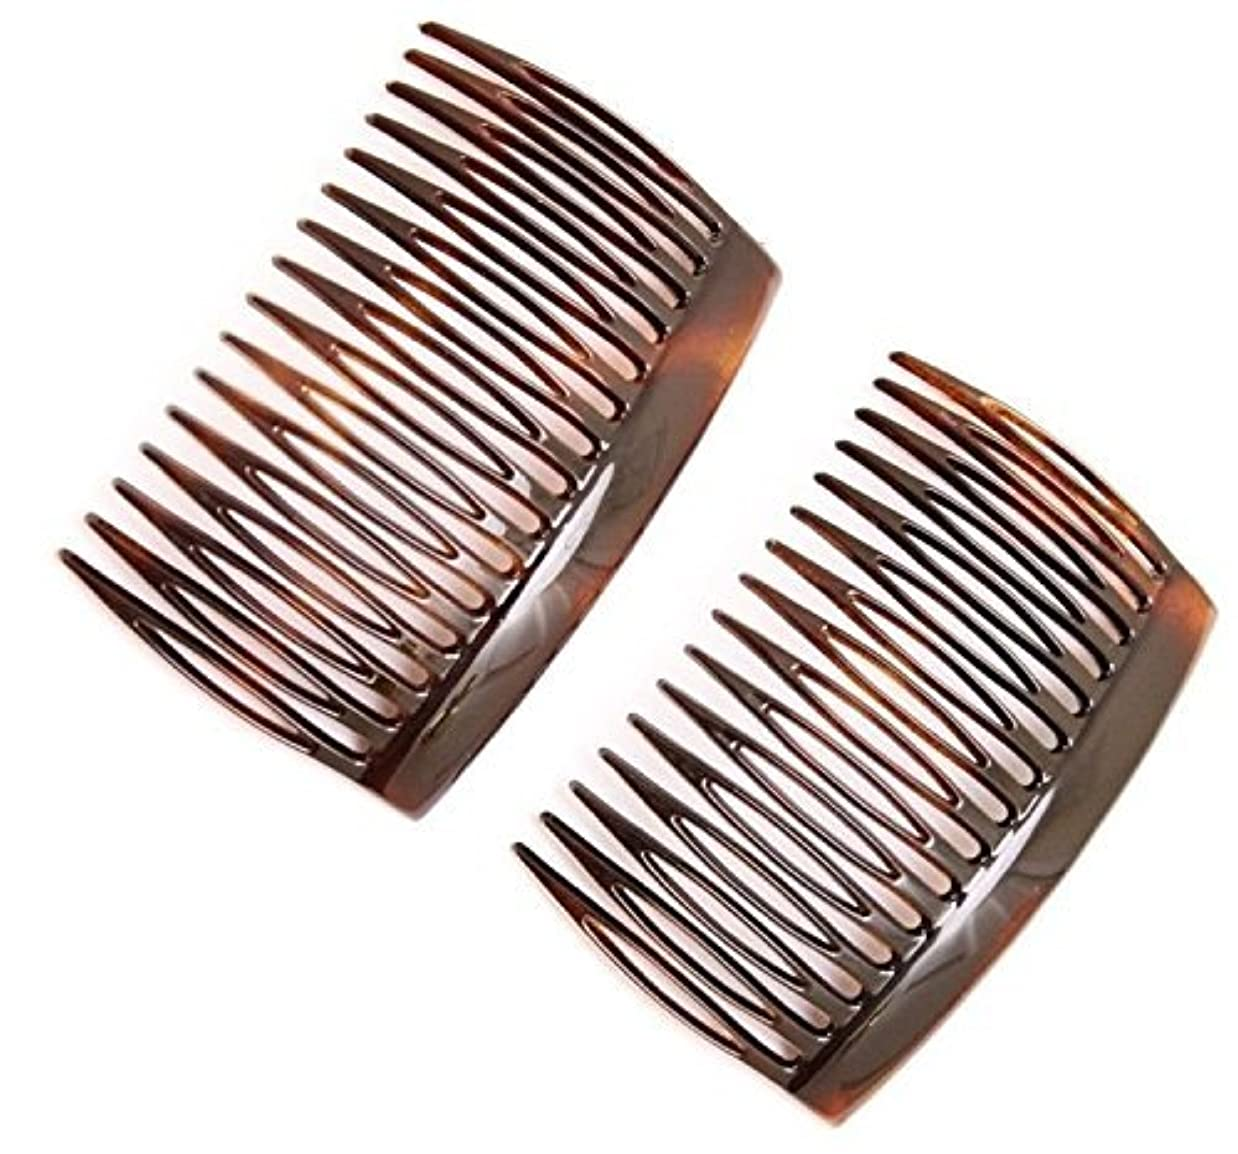 反射終了する頼むParcelona French 2 Pieces Glossy Celluloid Shell Good Grip Updo 16 Teeth Hair Side Combs -2.75 Inches (2 Pcs)...